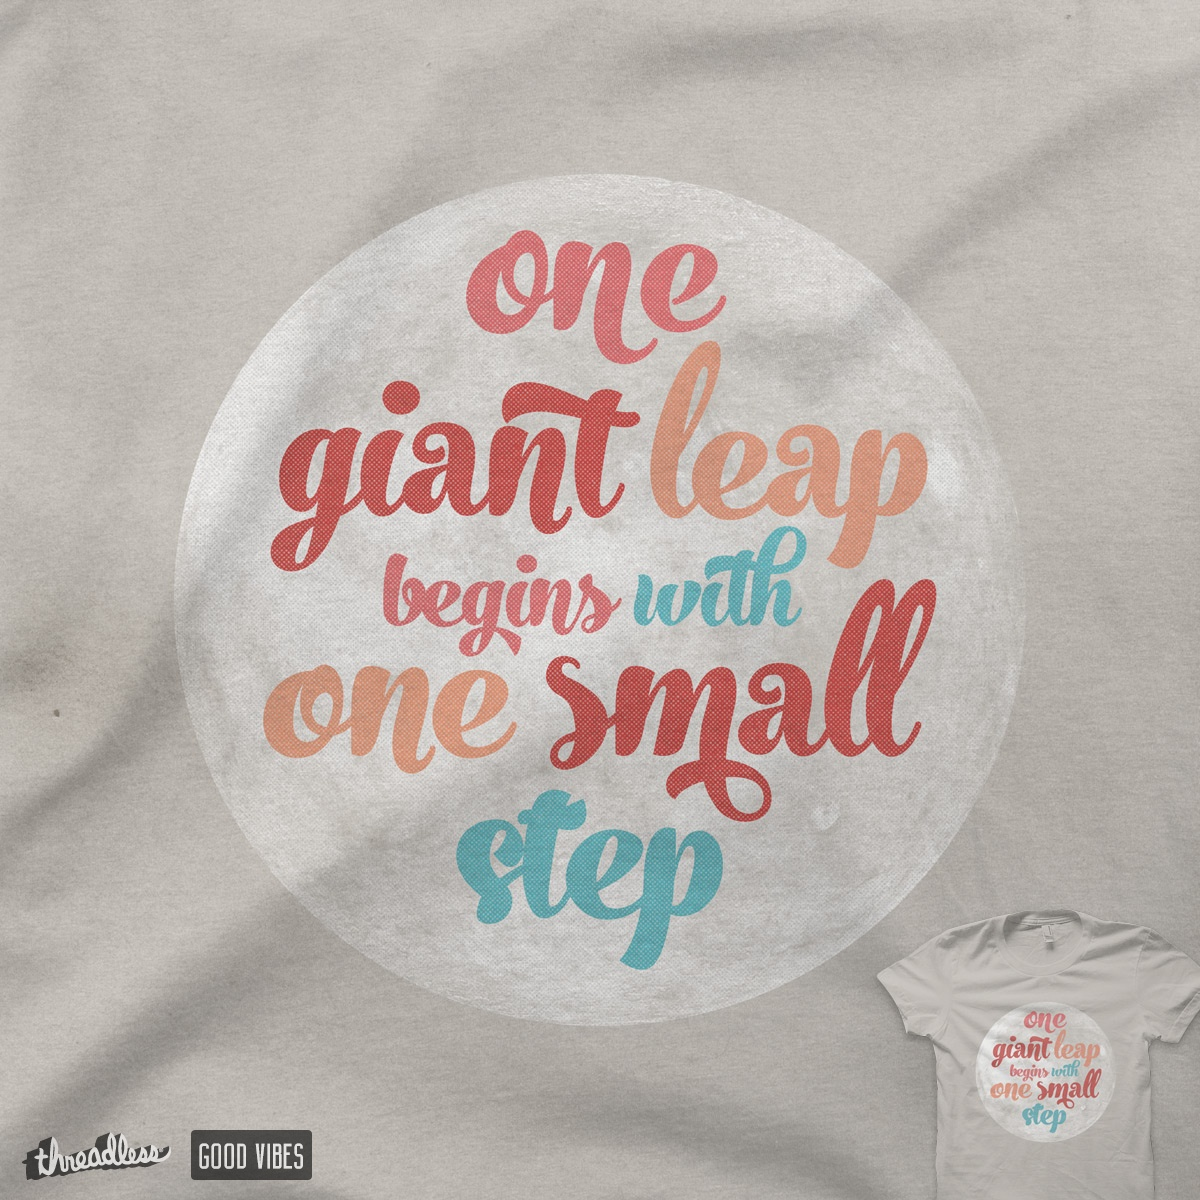 One Giant Leap Begins With One Small Step